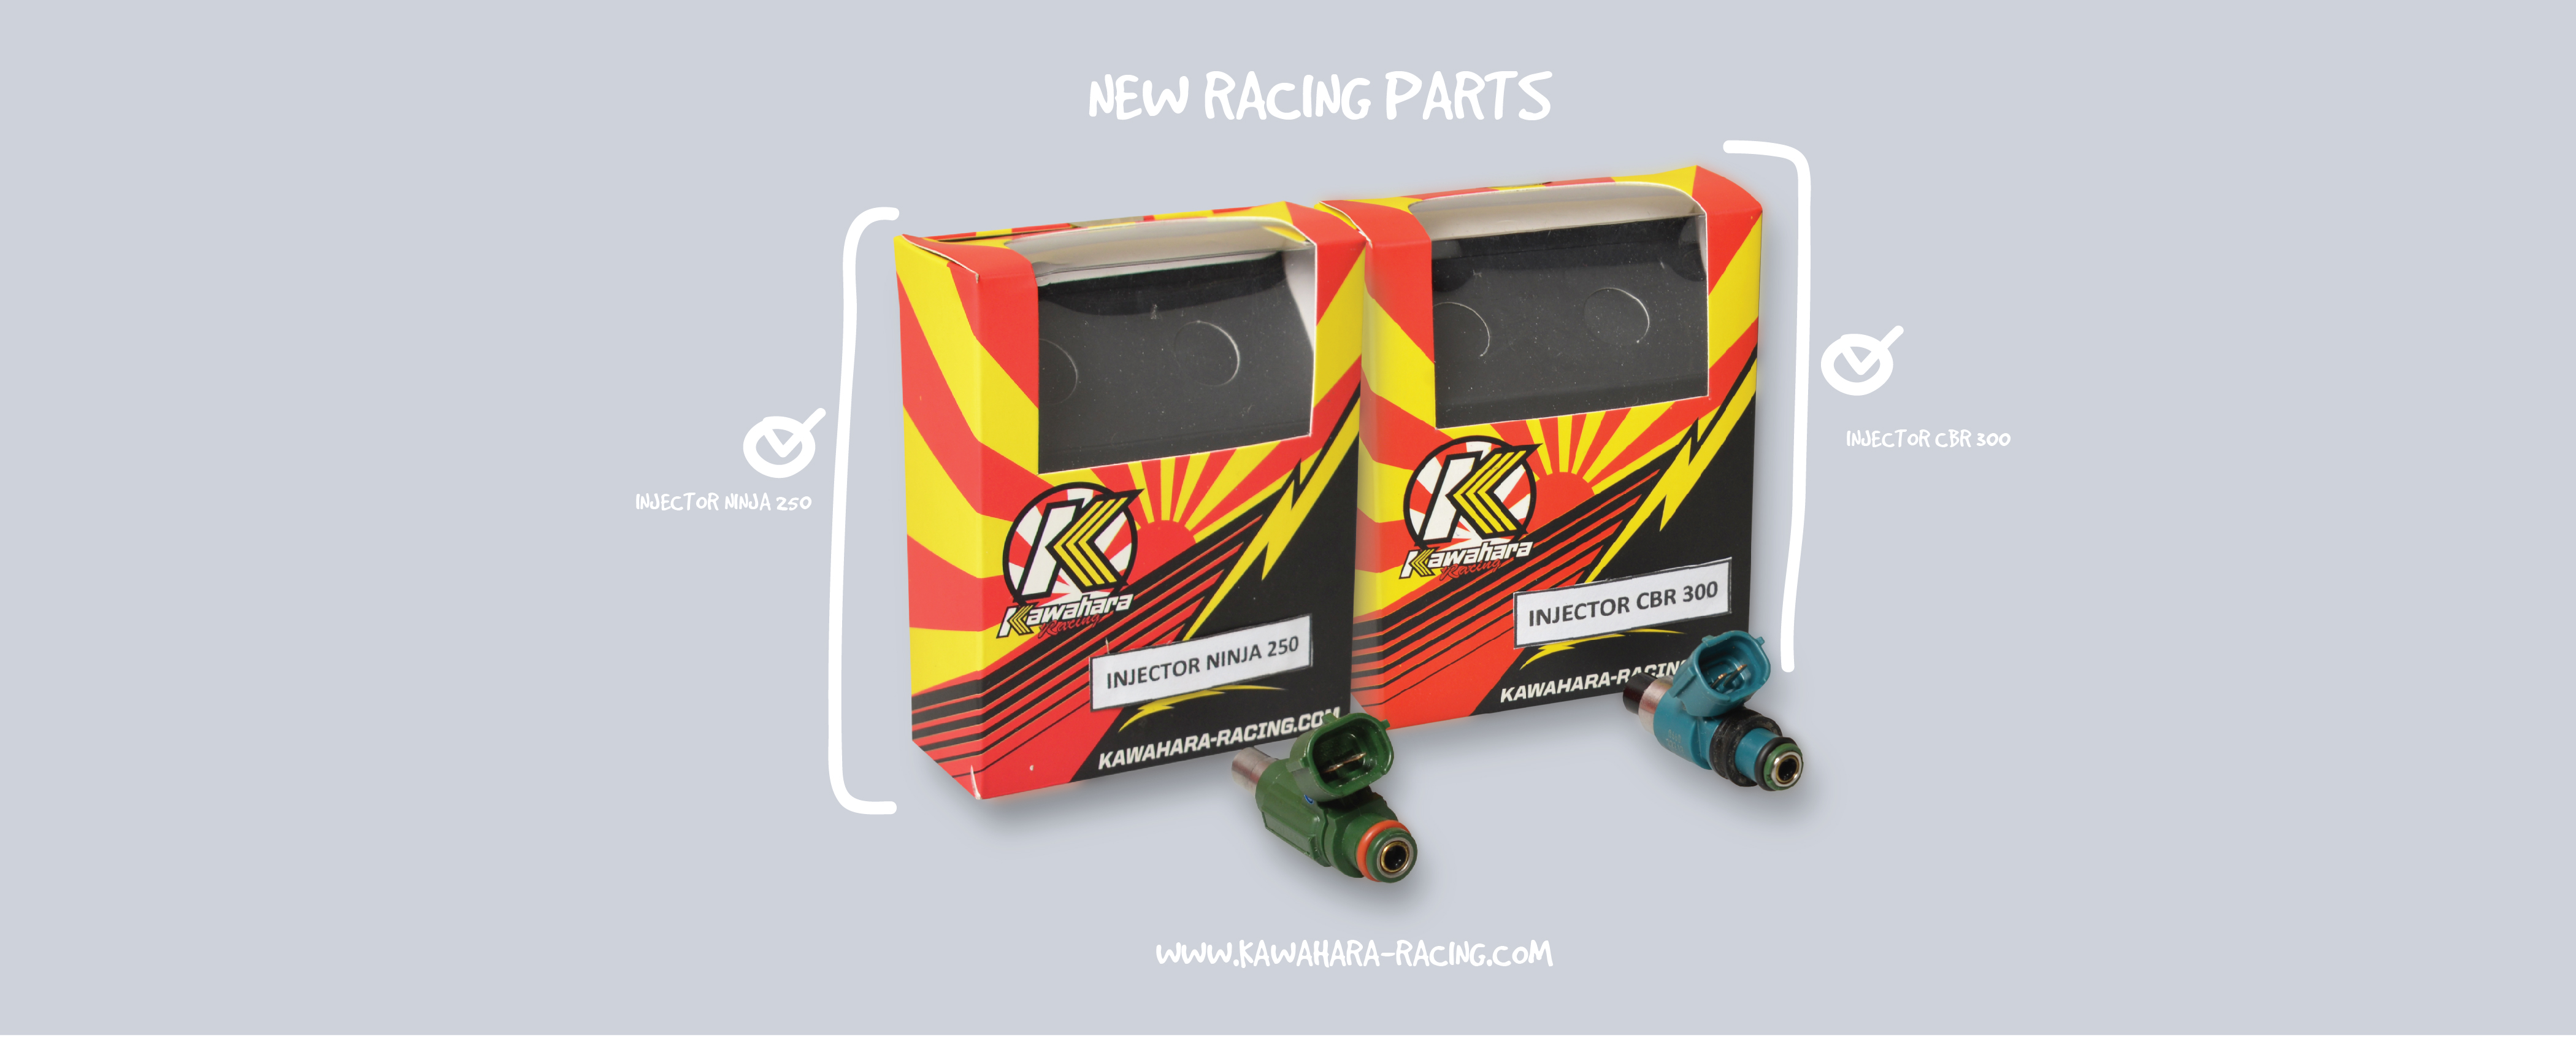 Home kawahara racing indonesia racing part cnc jakarta